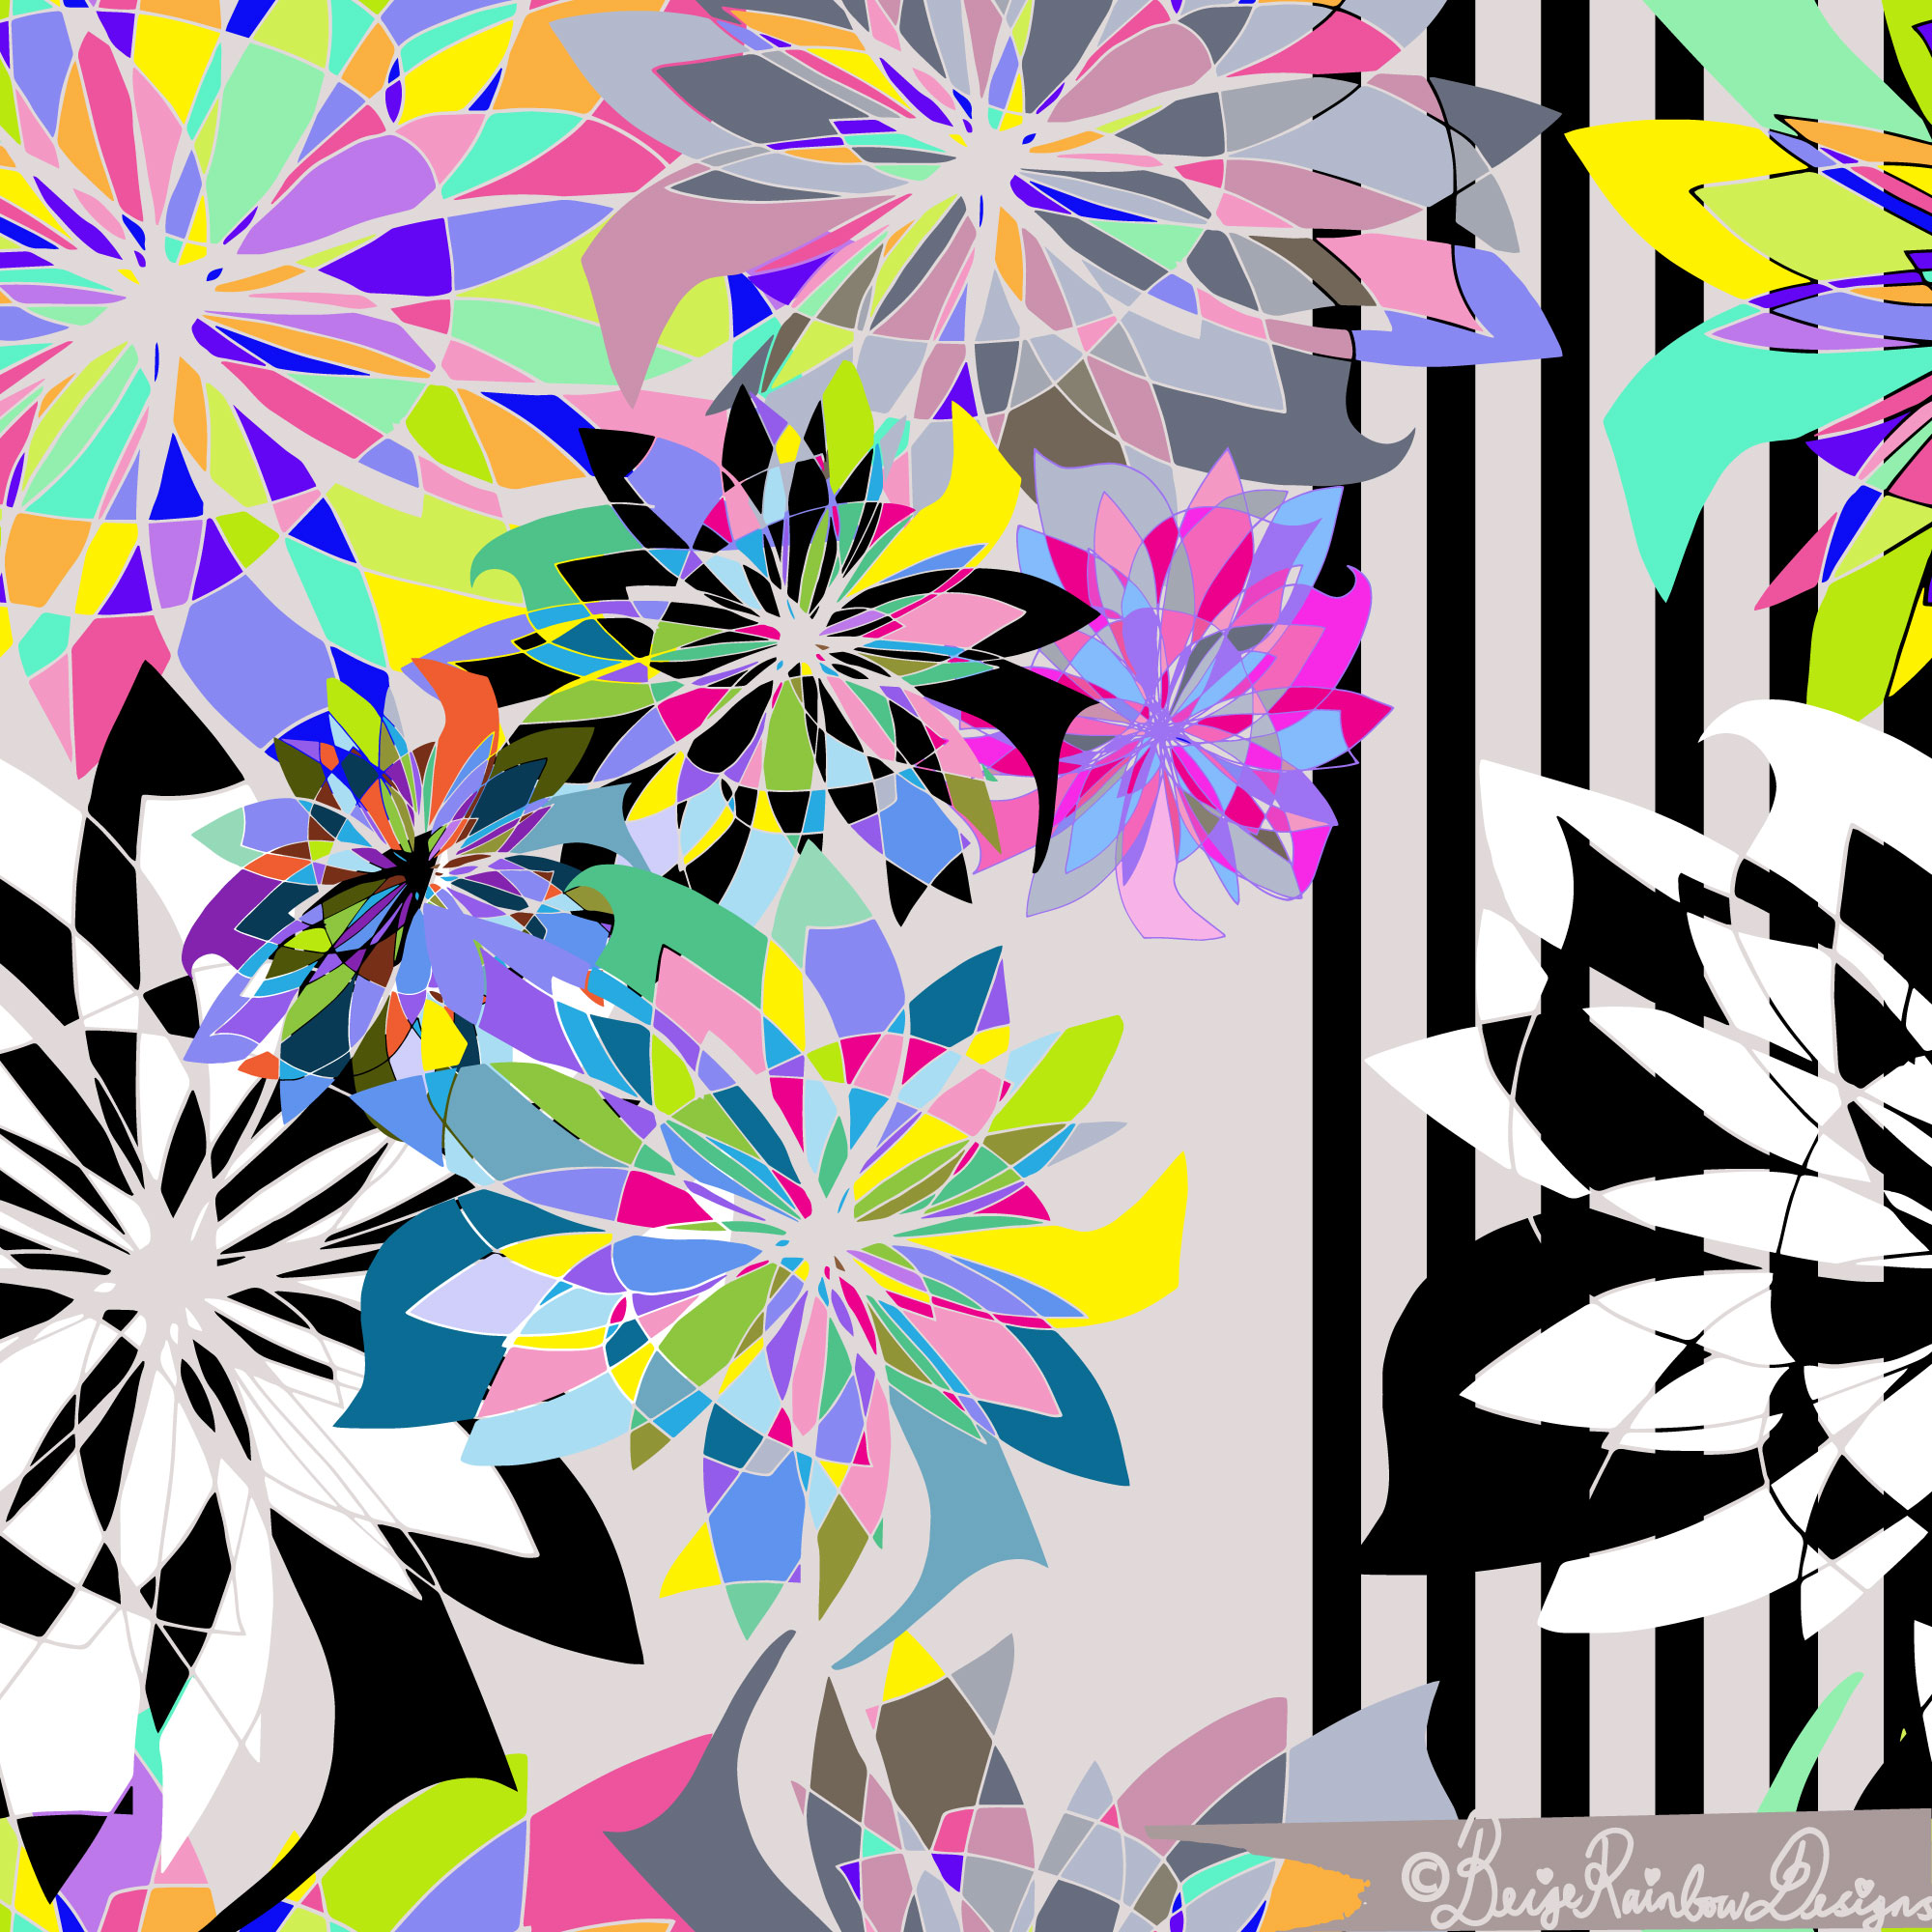 Shattered-stripey-placement-print-final-for-webby.jpg